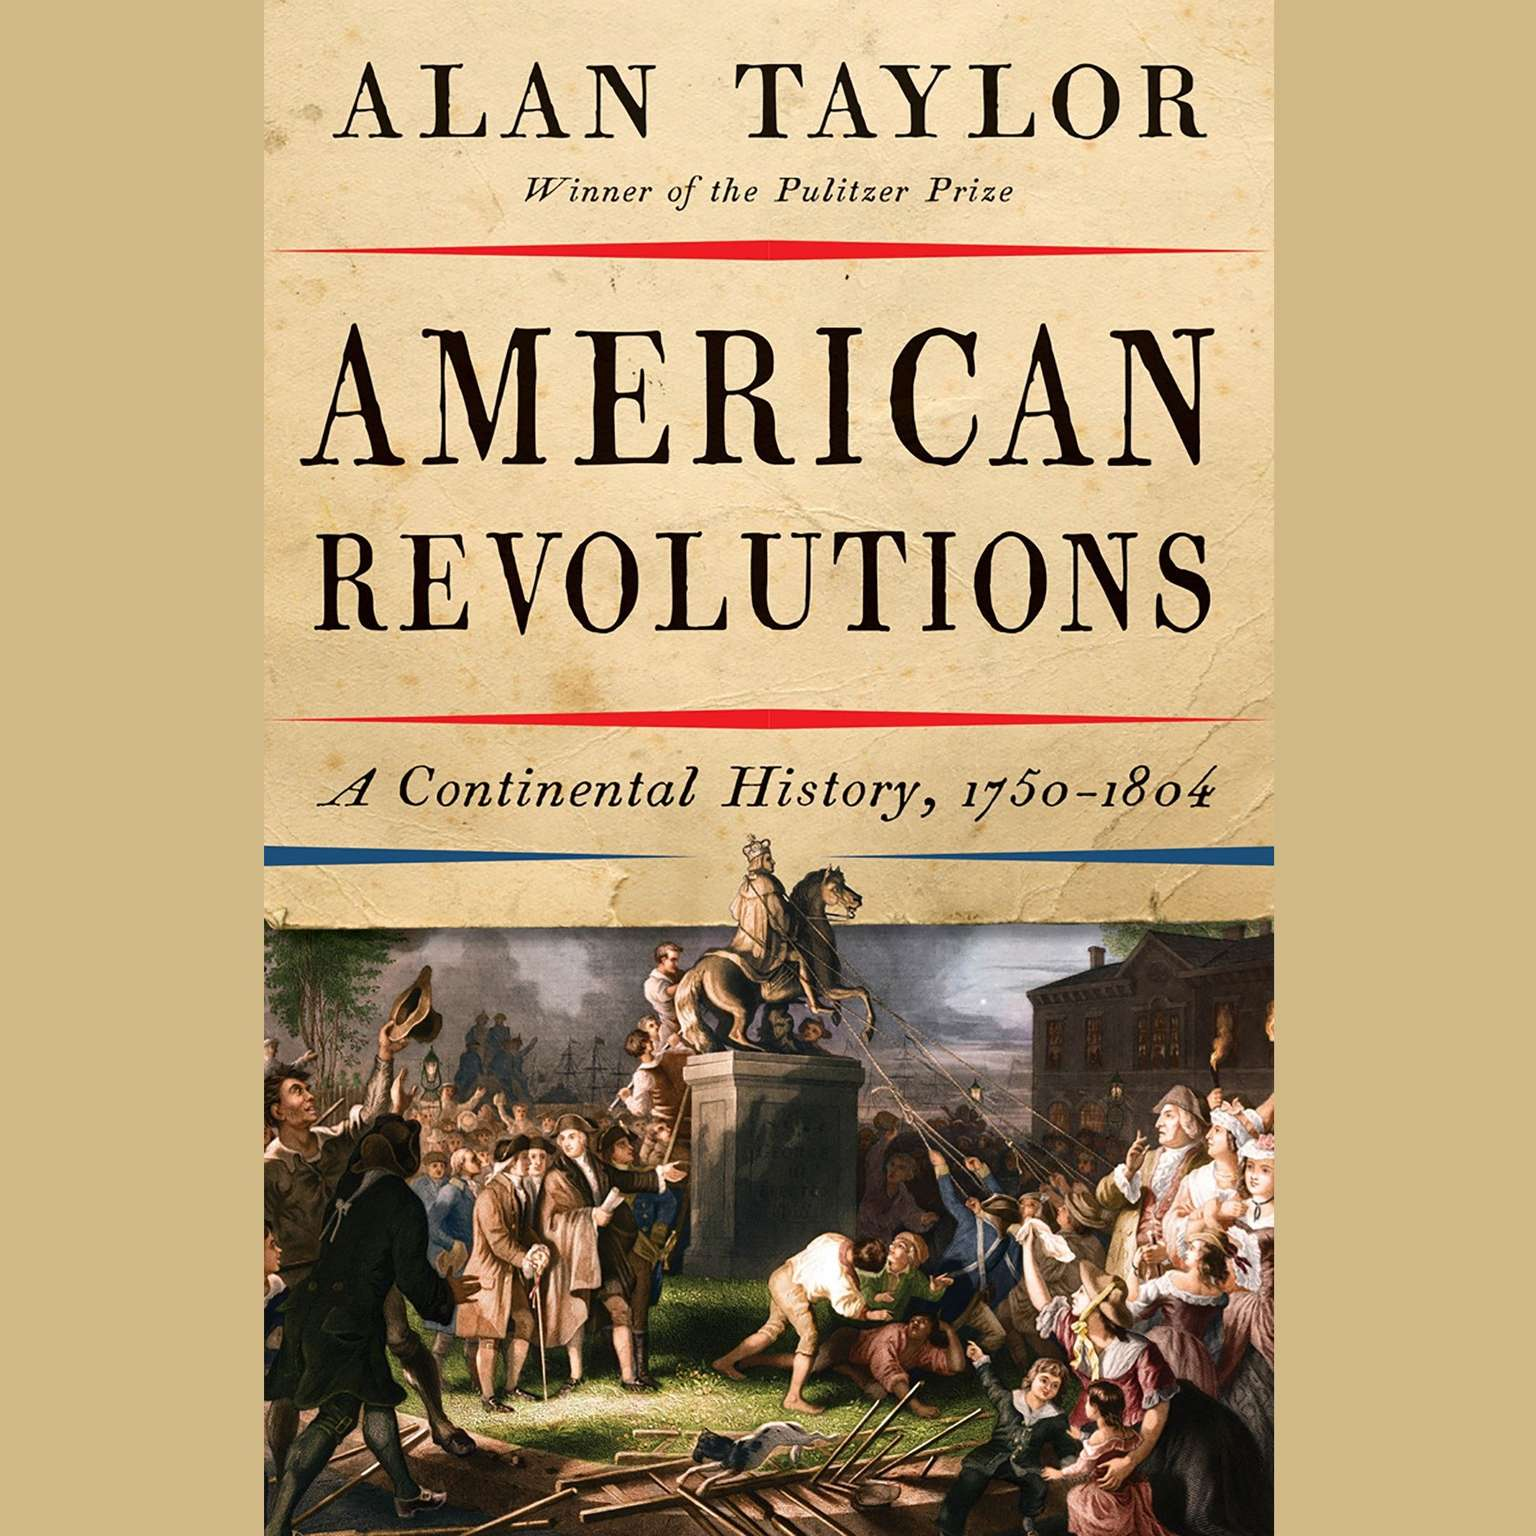 Printable American Revolutions: A Continental History, 1750-1804 Audiobook Cover Art